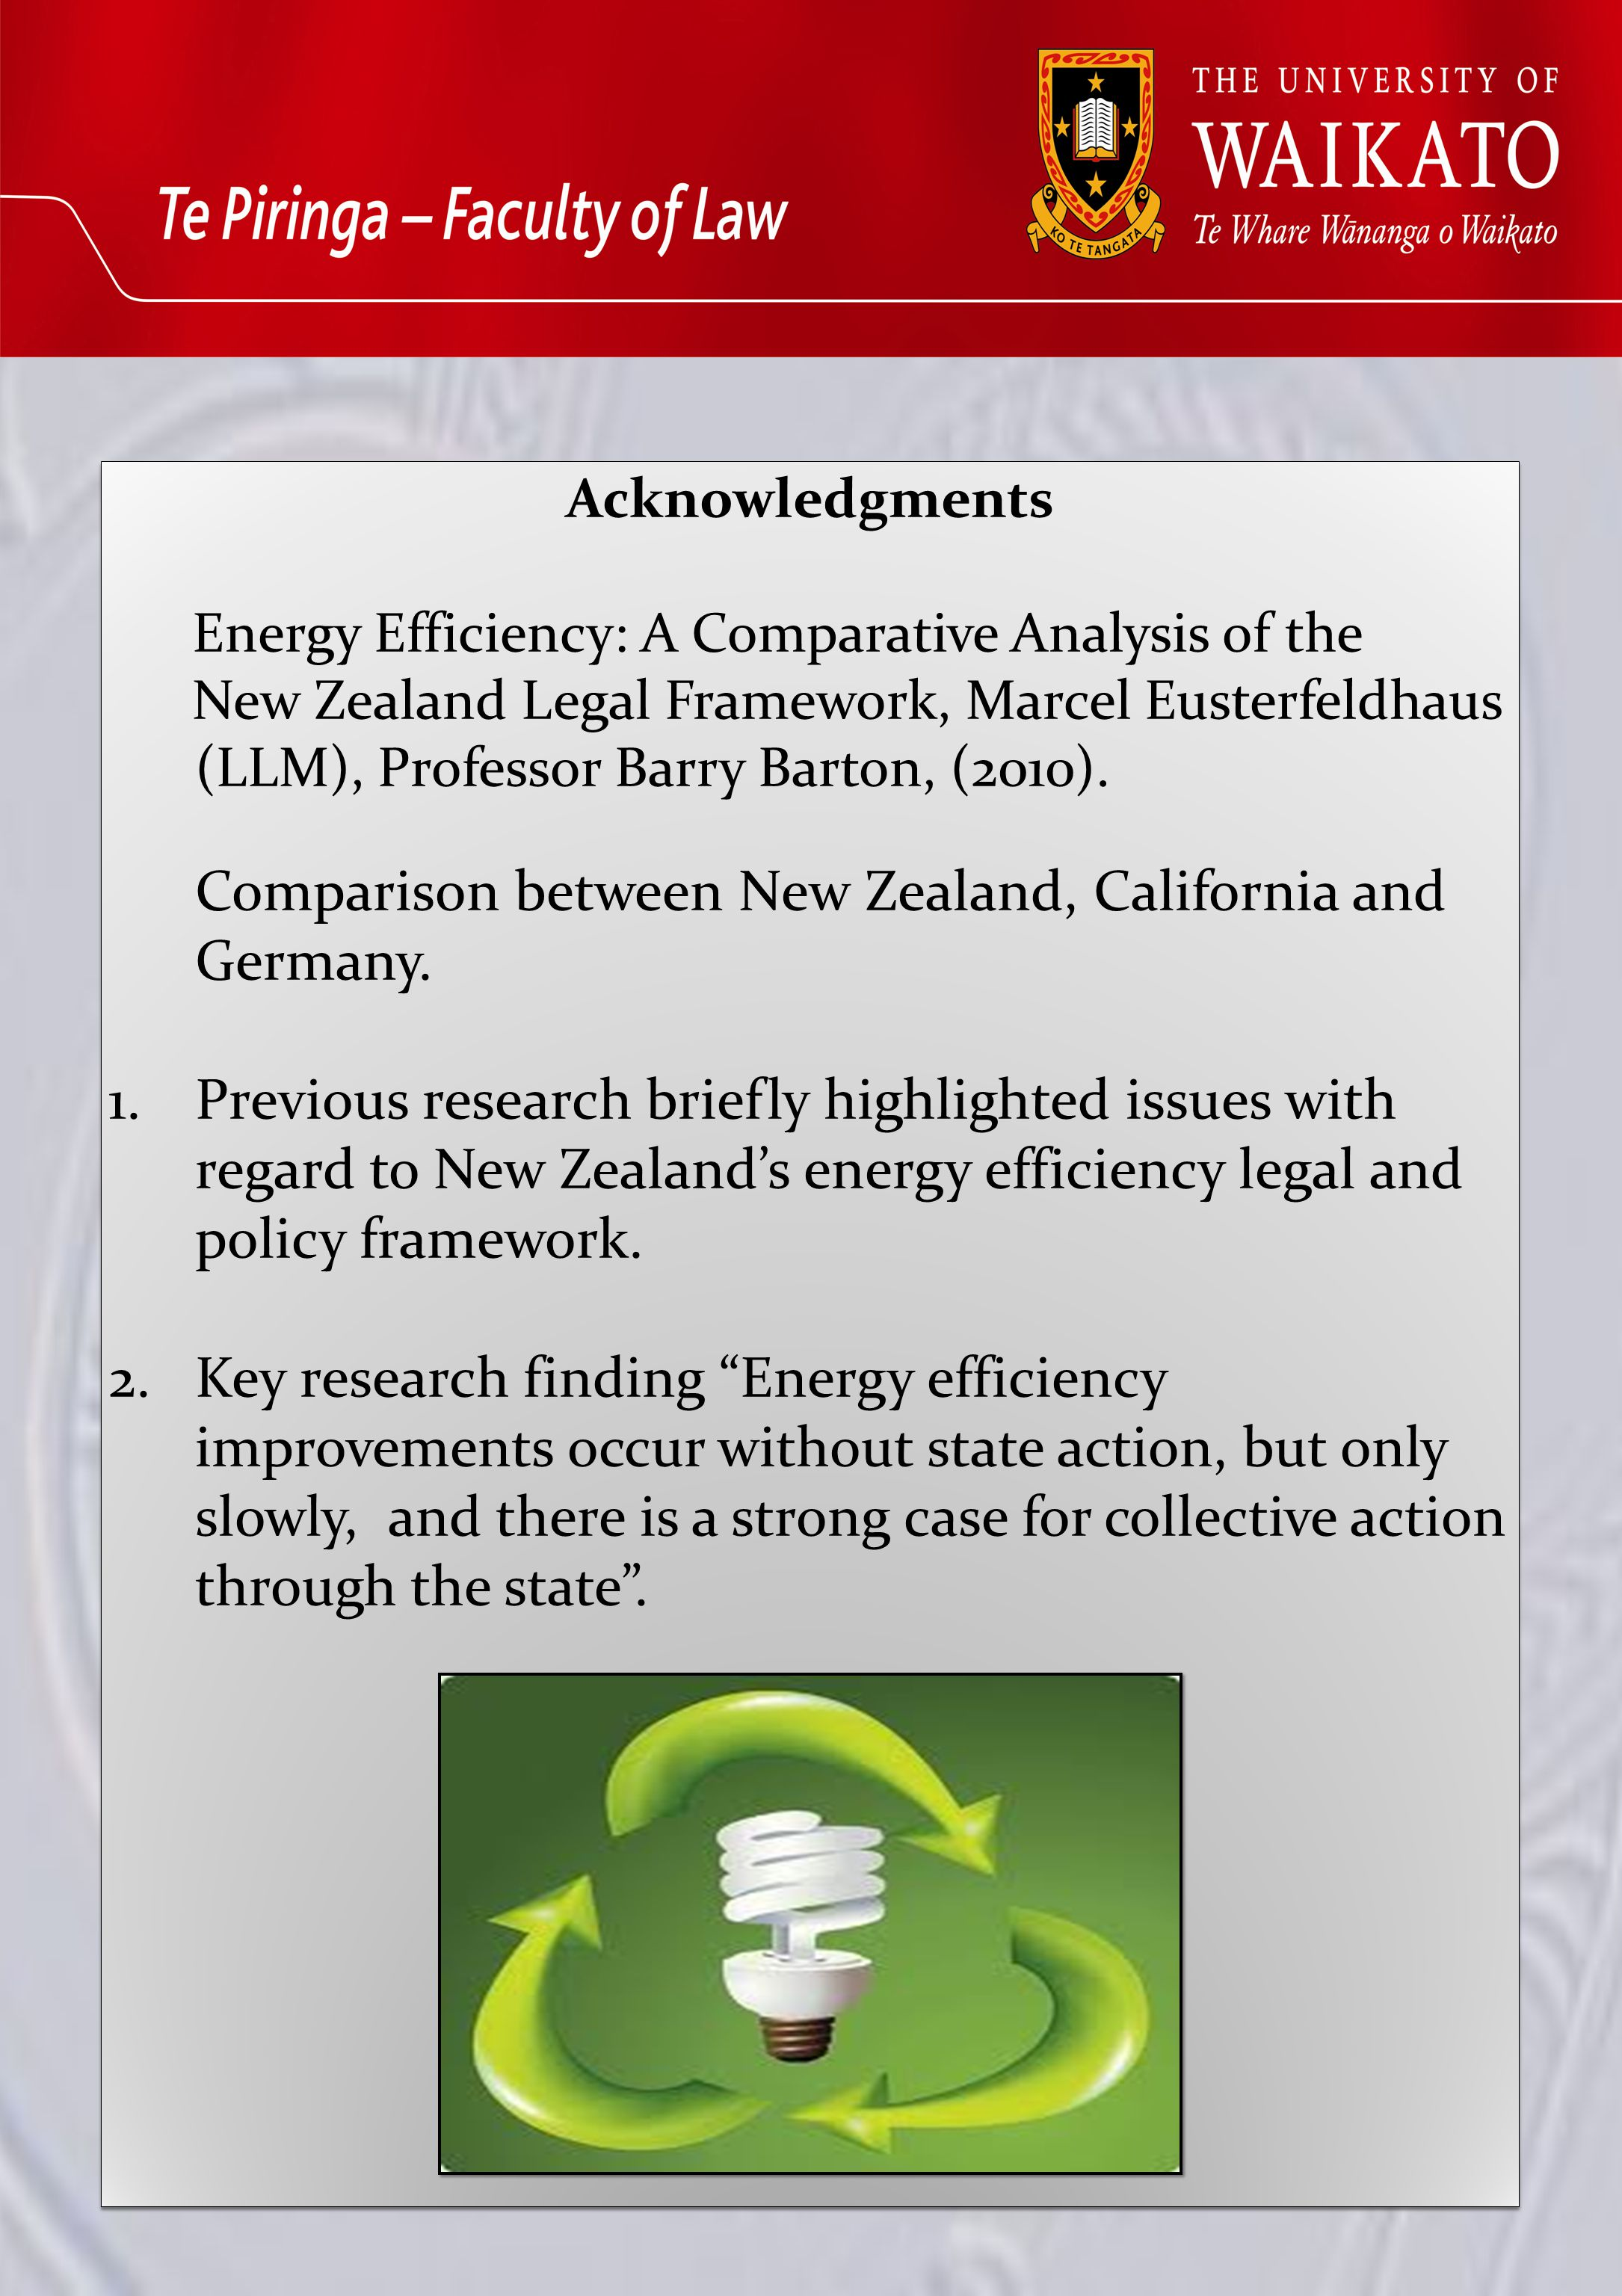 Acknowledgments Energy Efficiency: A Comparative Analysis of the New Zealand Legal Framework, Marcel Eusterfeldhaus (LLM), Professor Barry Barton, (2010).